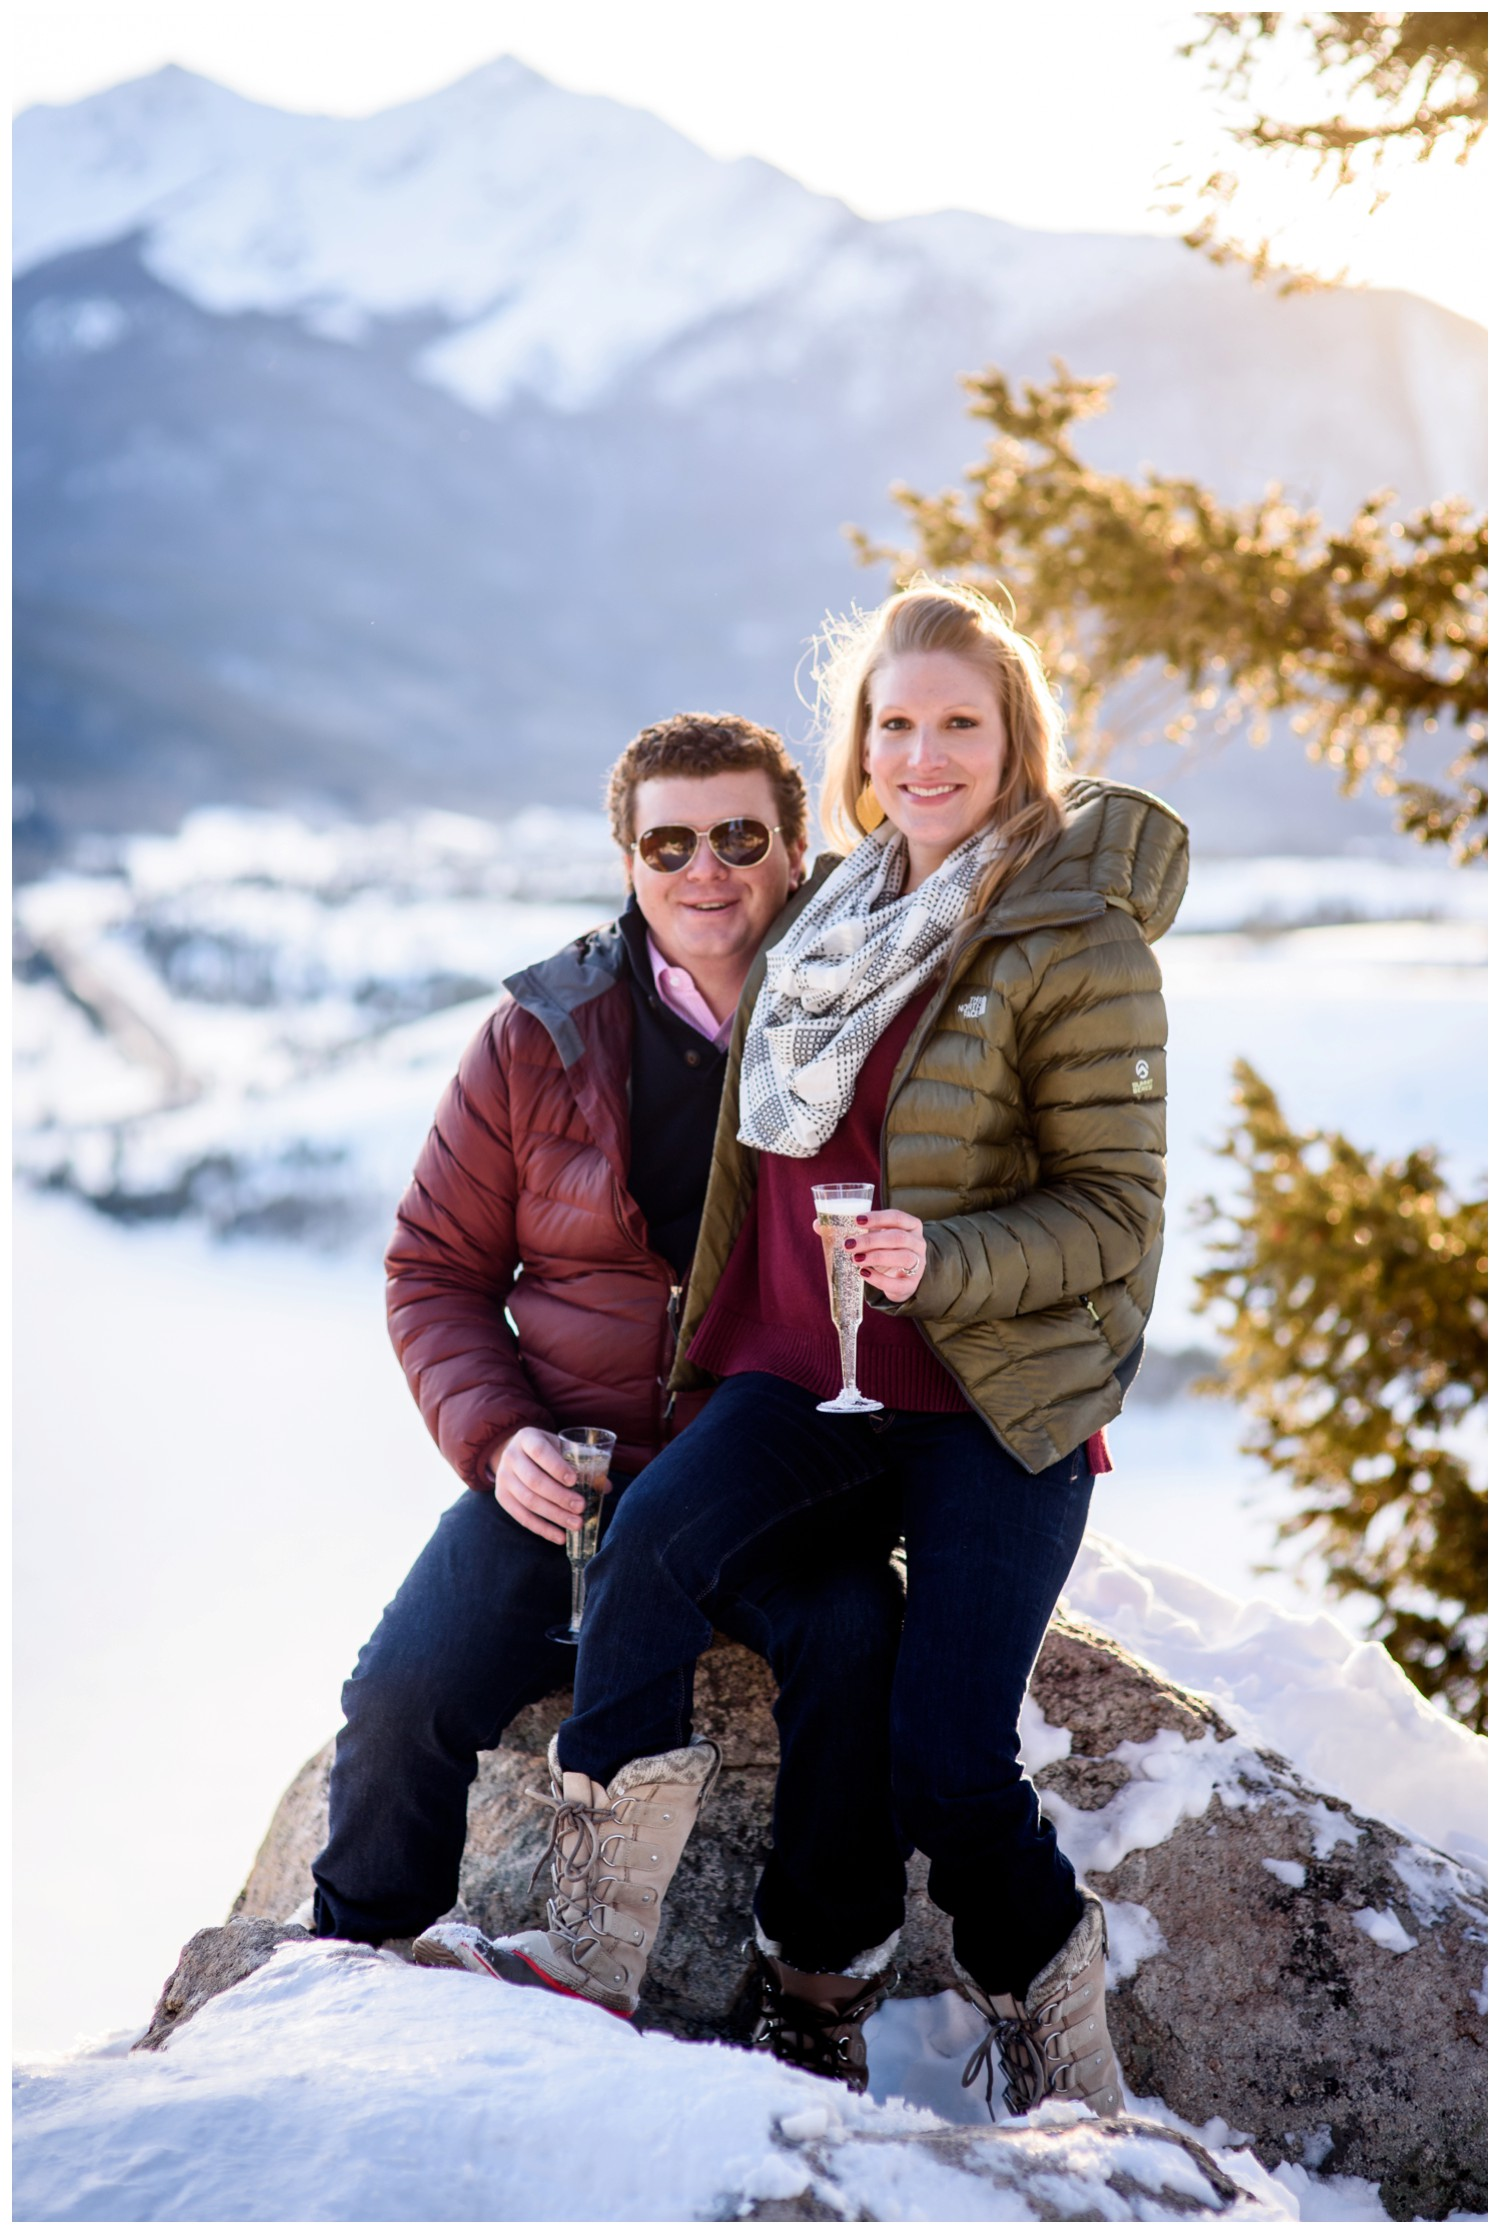 sapphire-point-colorado-winter-engagement-photography-_0034.jpg